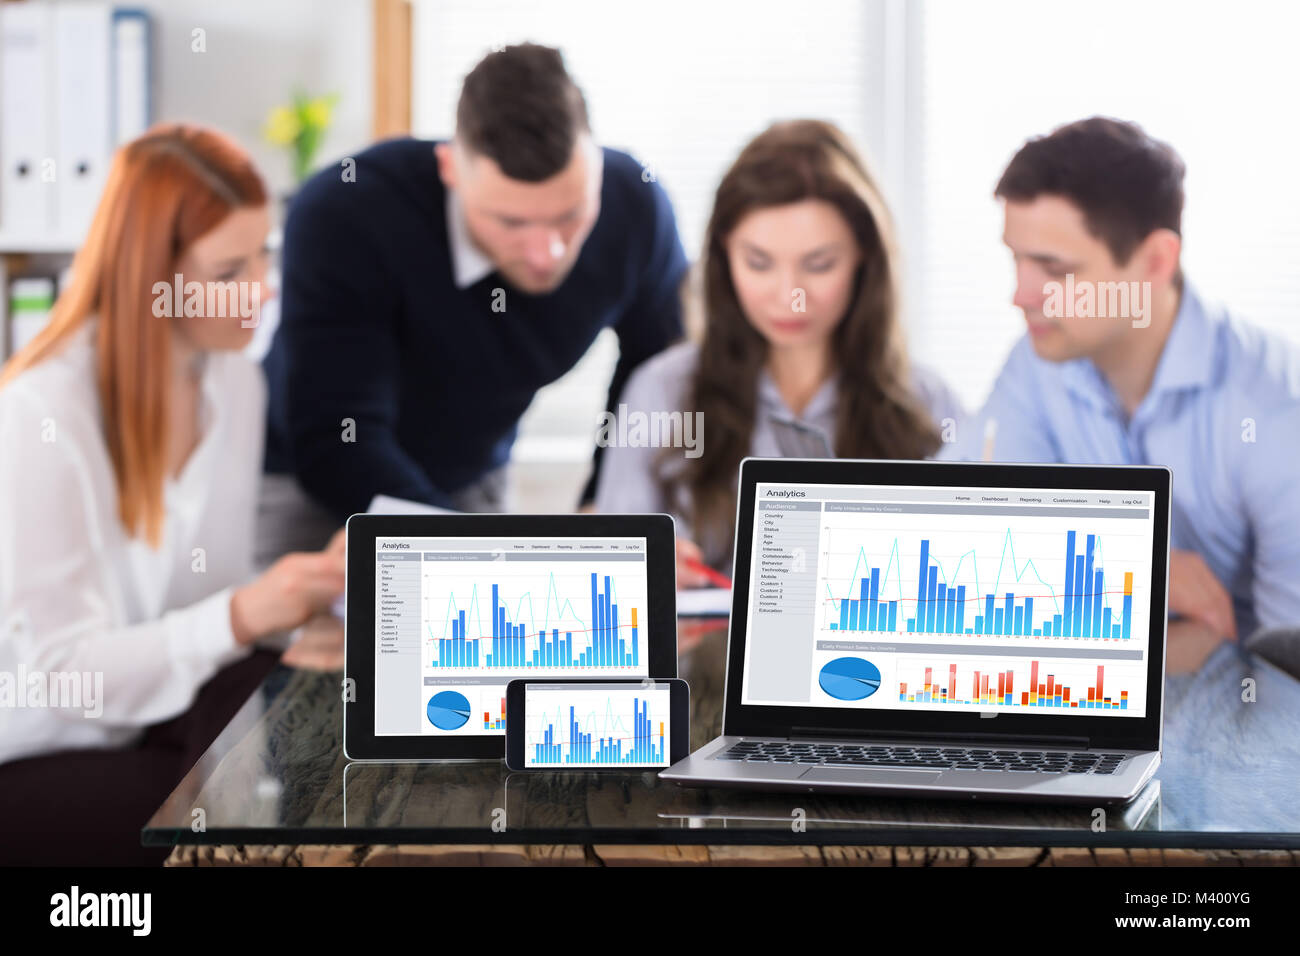 Graph Display On Various Modern Electronic Devices Screen Over The Office Desk - Stock Image